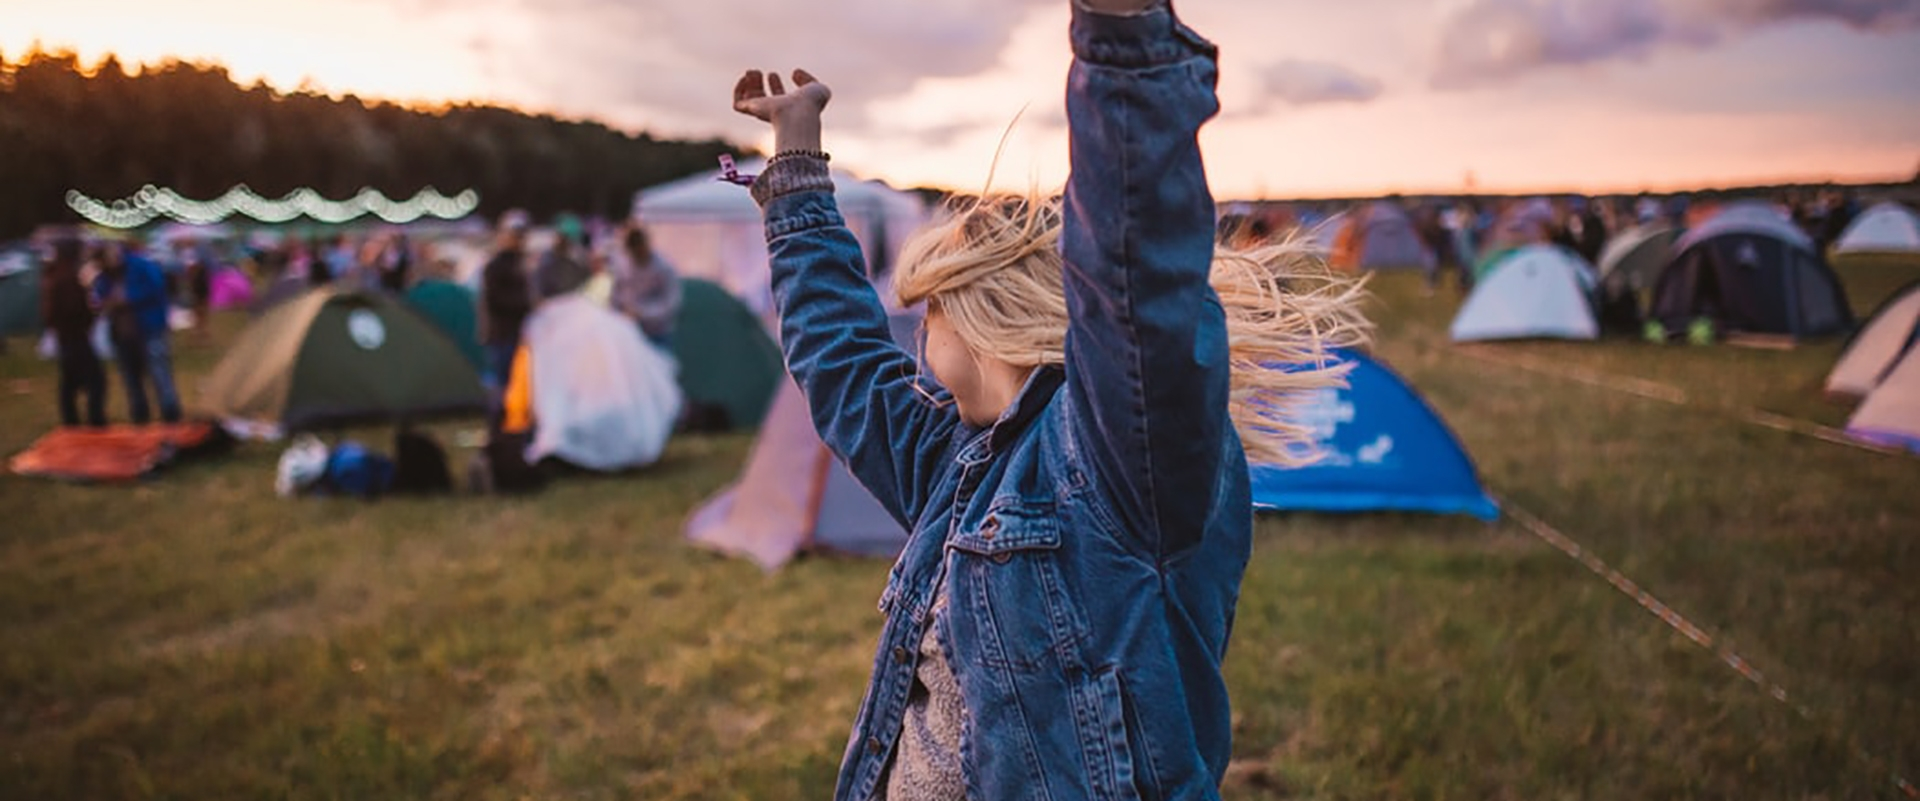 How to Make Your own Festival at Home